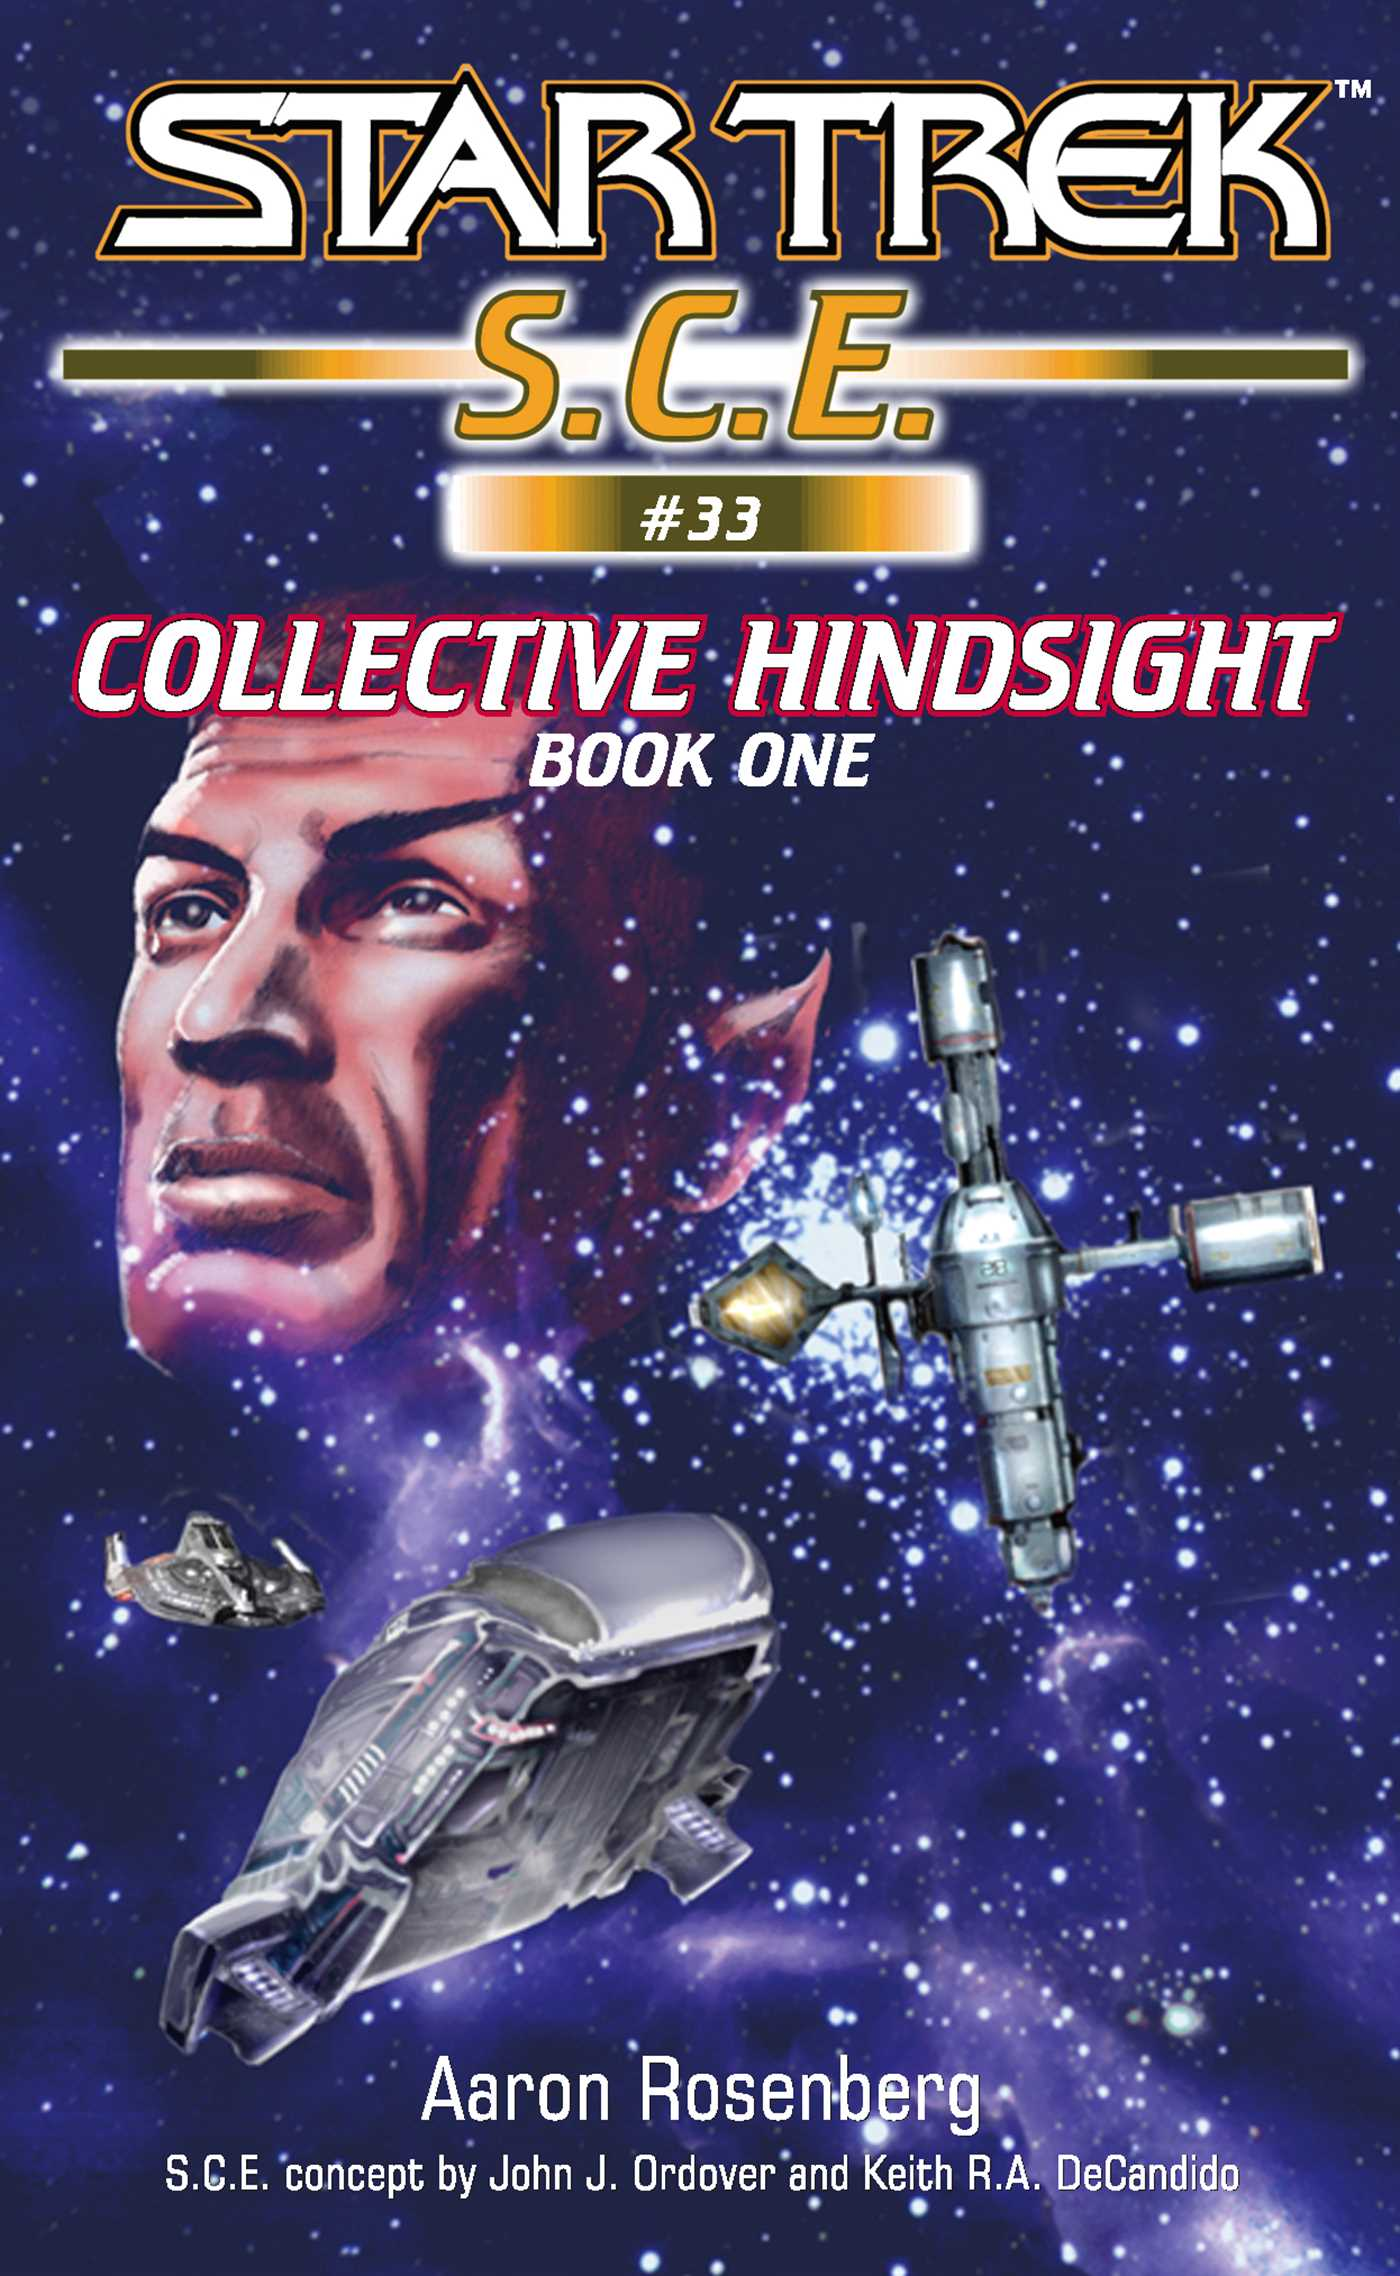 Star trek collective hindsight book 1 9780743480833 hr